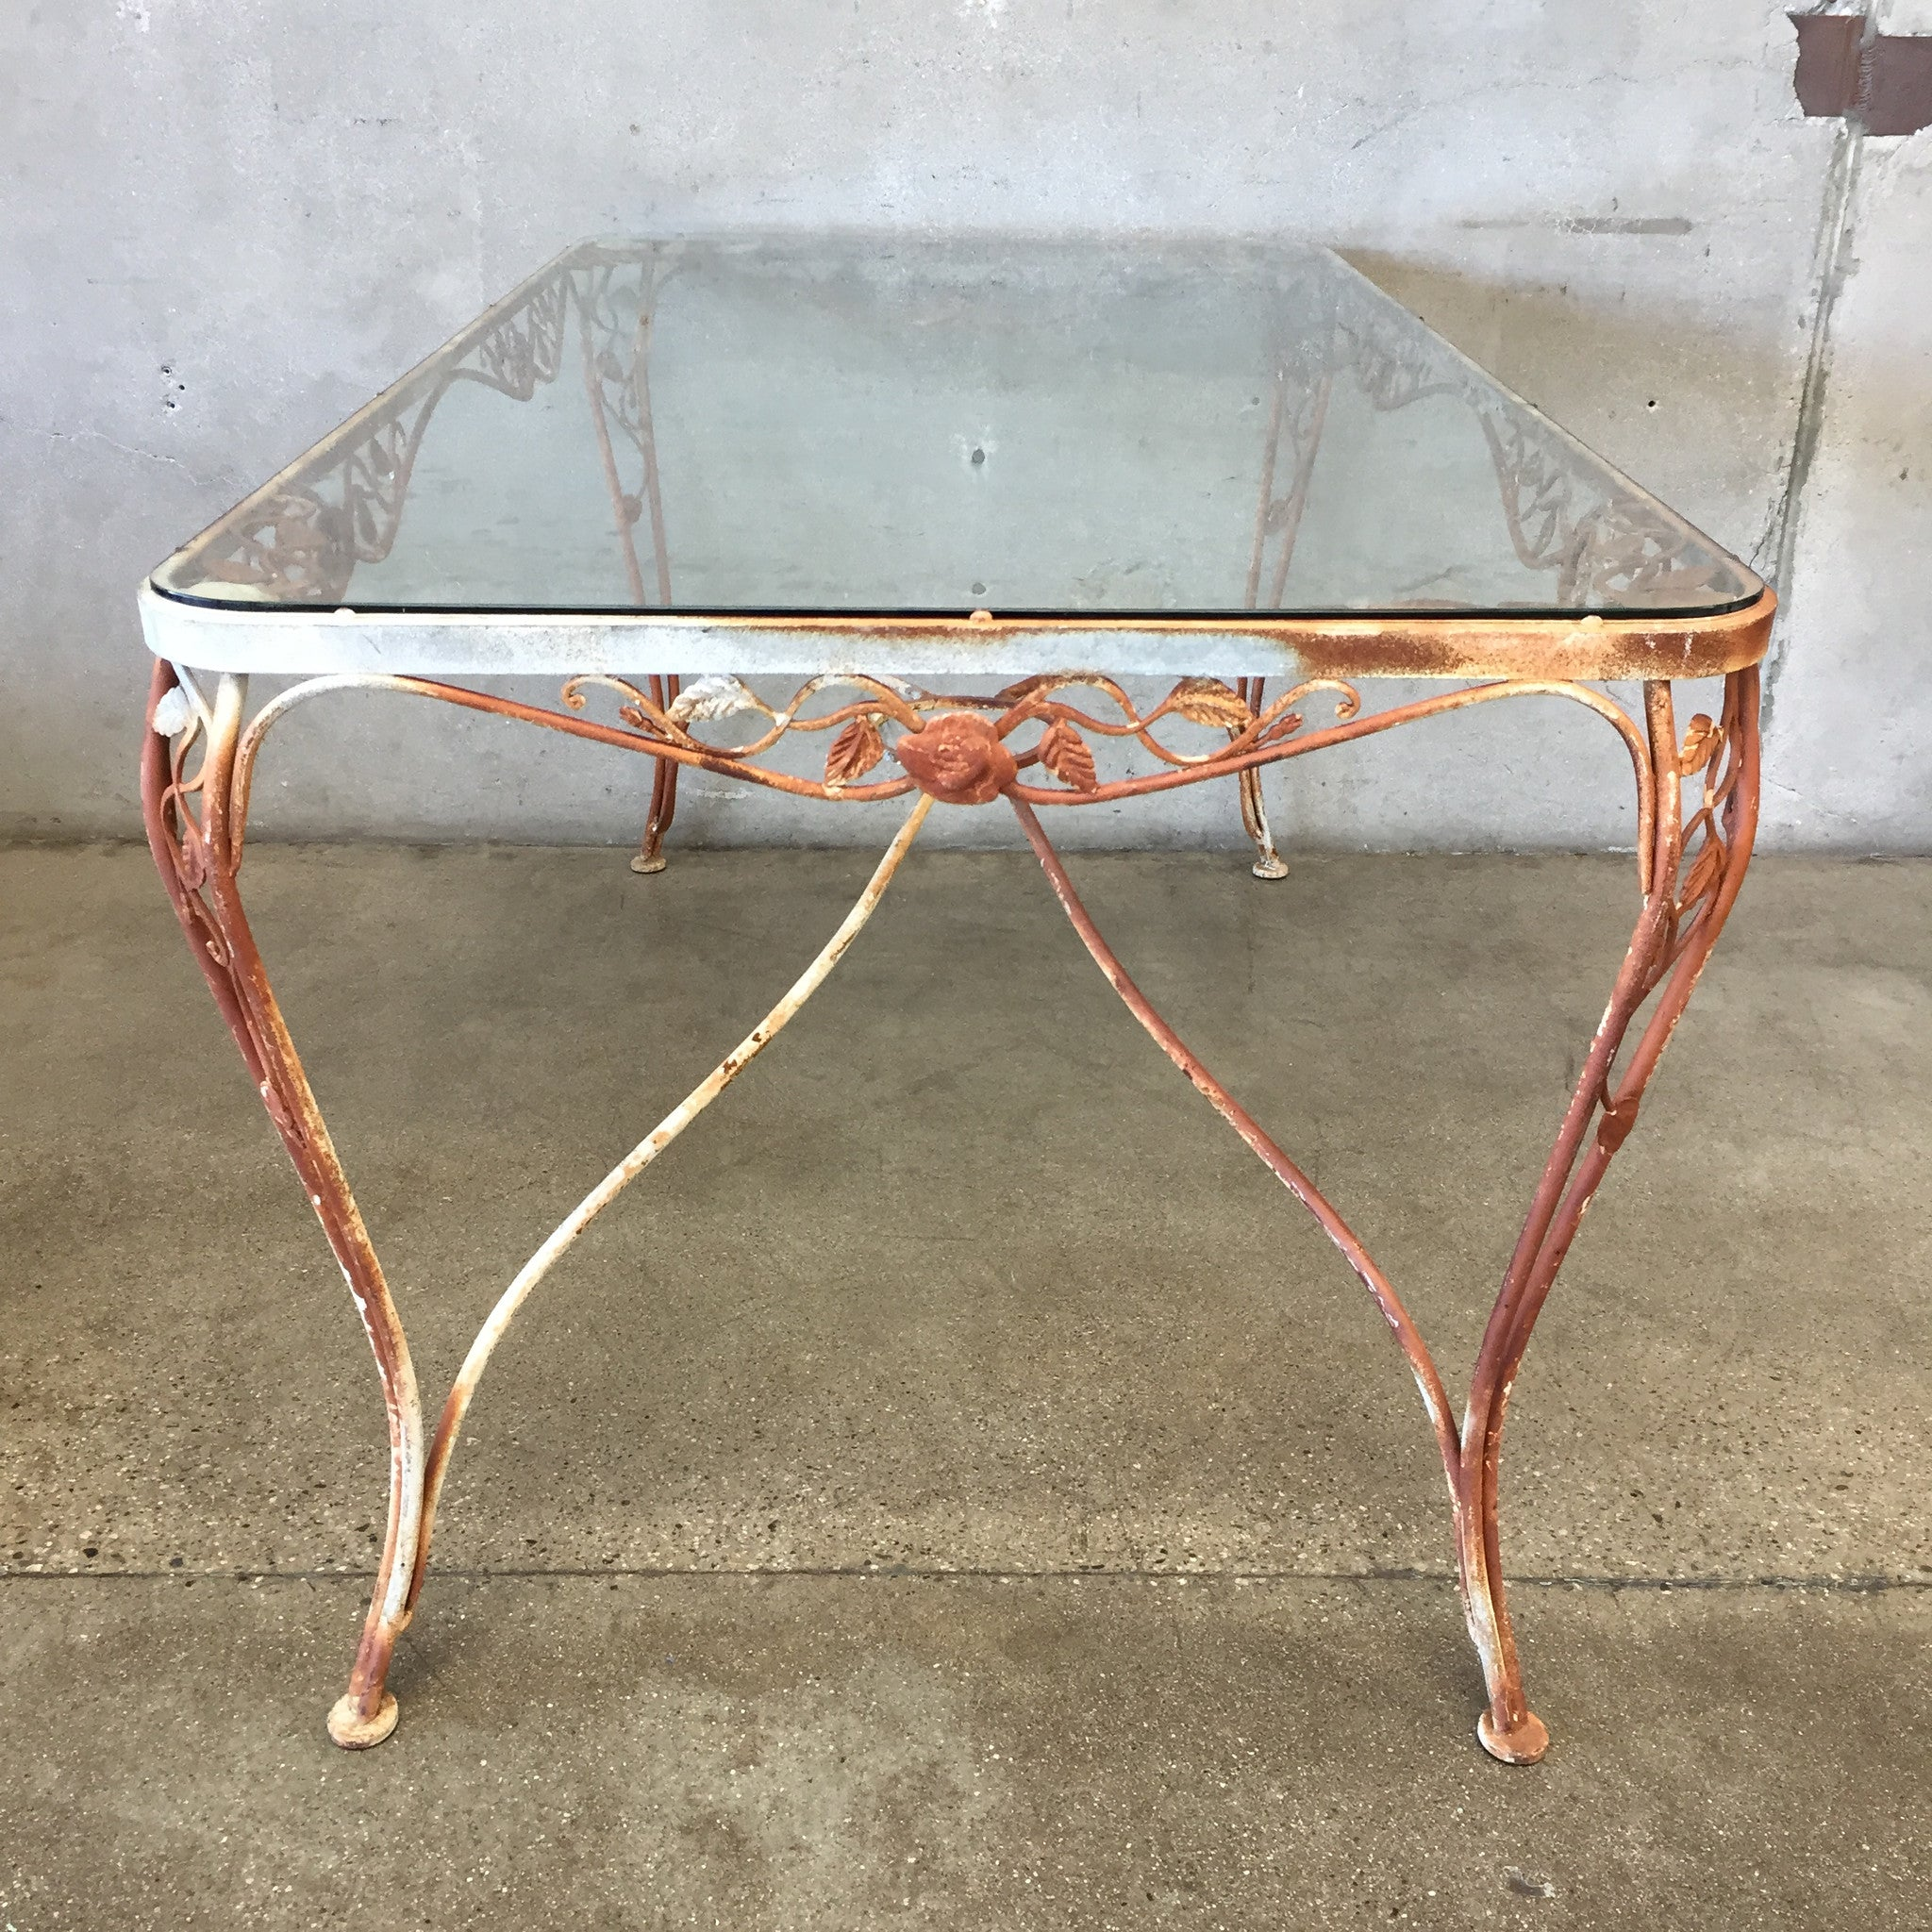 ... Vintage Iron Patio Table With Tempered Glass Top ...